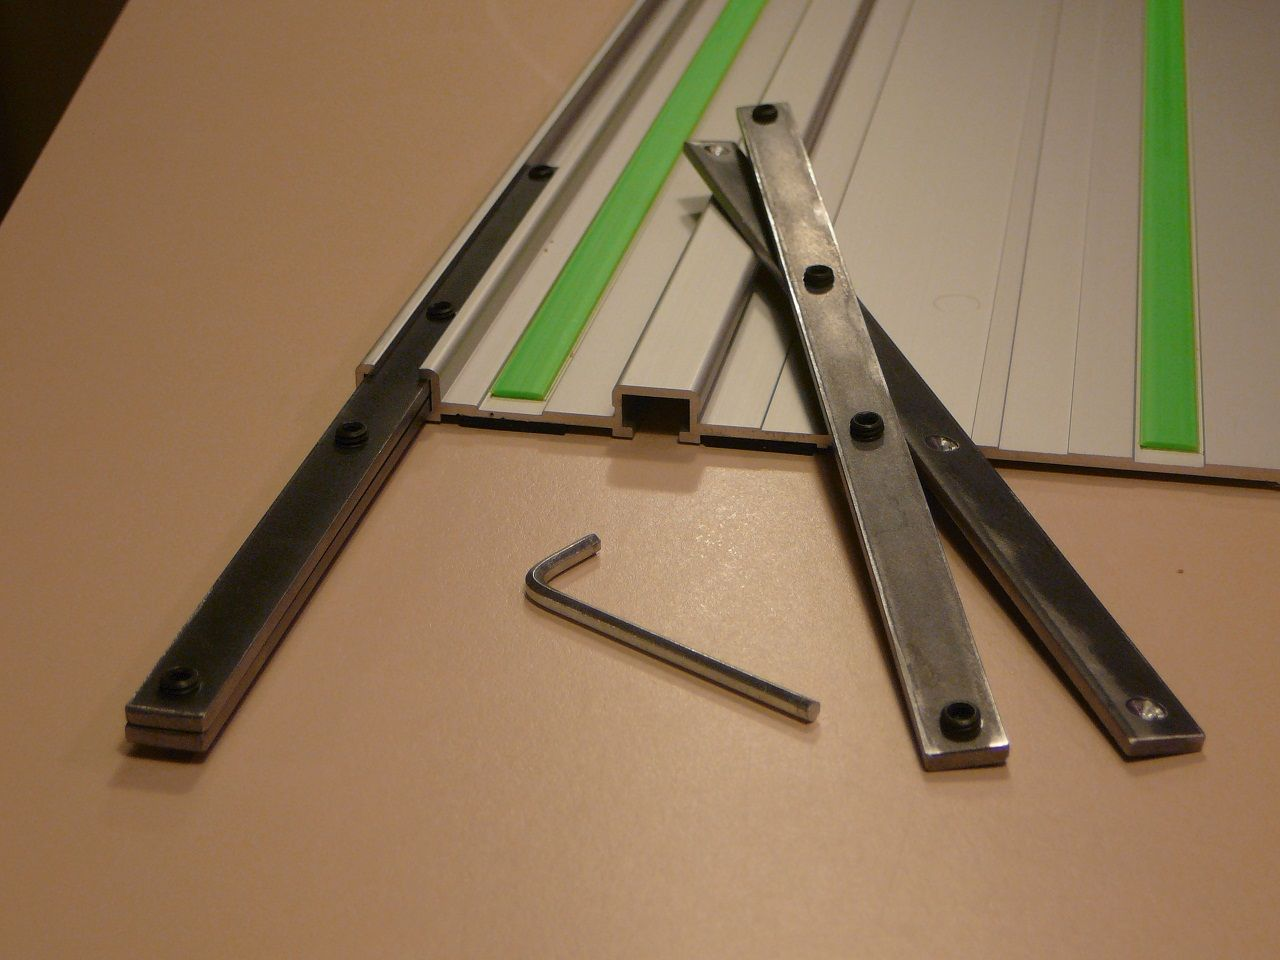 4 Homemade Guide Rail Connectors Not Your Typical Ones